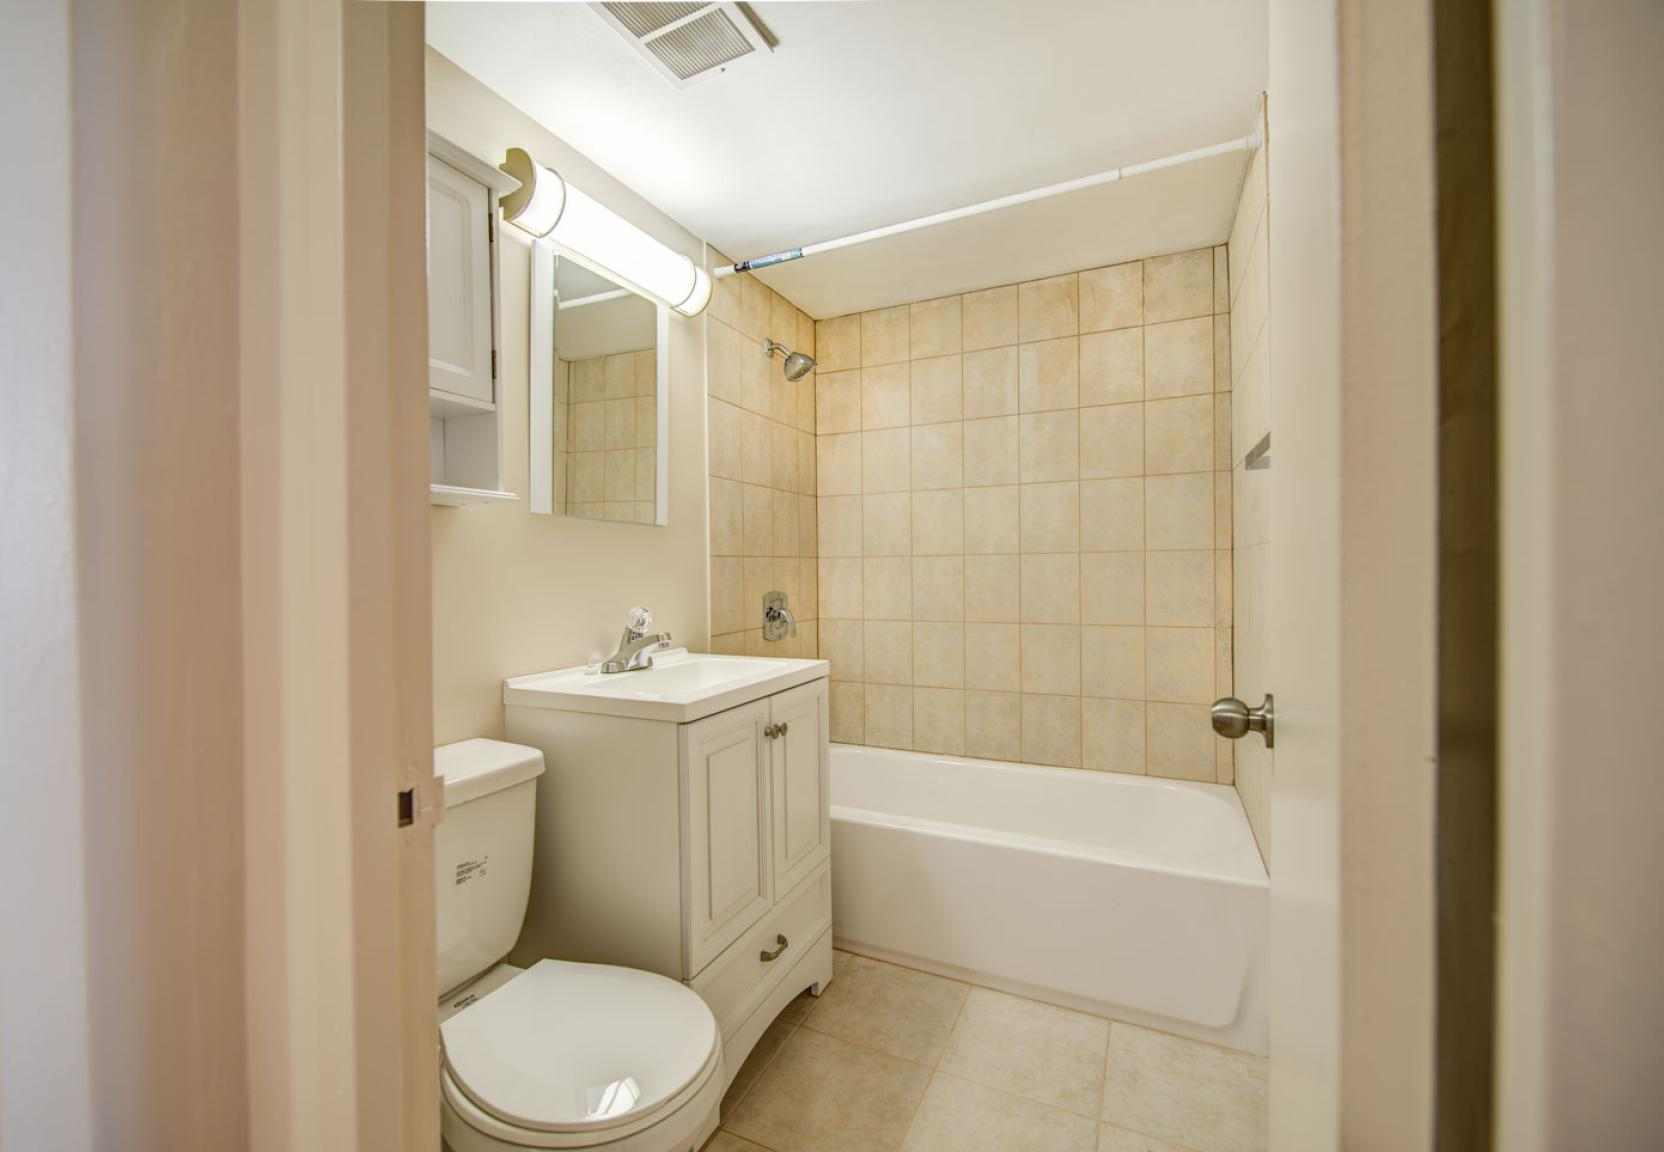 1 bedroom Apartments for rent in Toronto at Dunfield Tower - Photo 20 - RentersPages – L138879